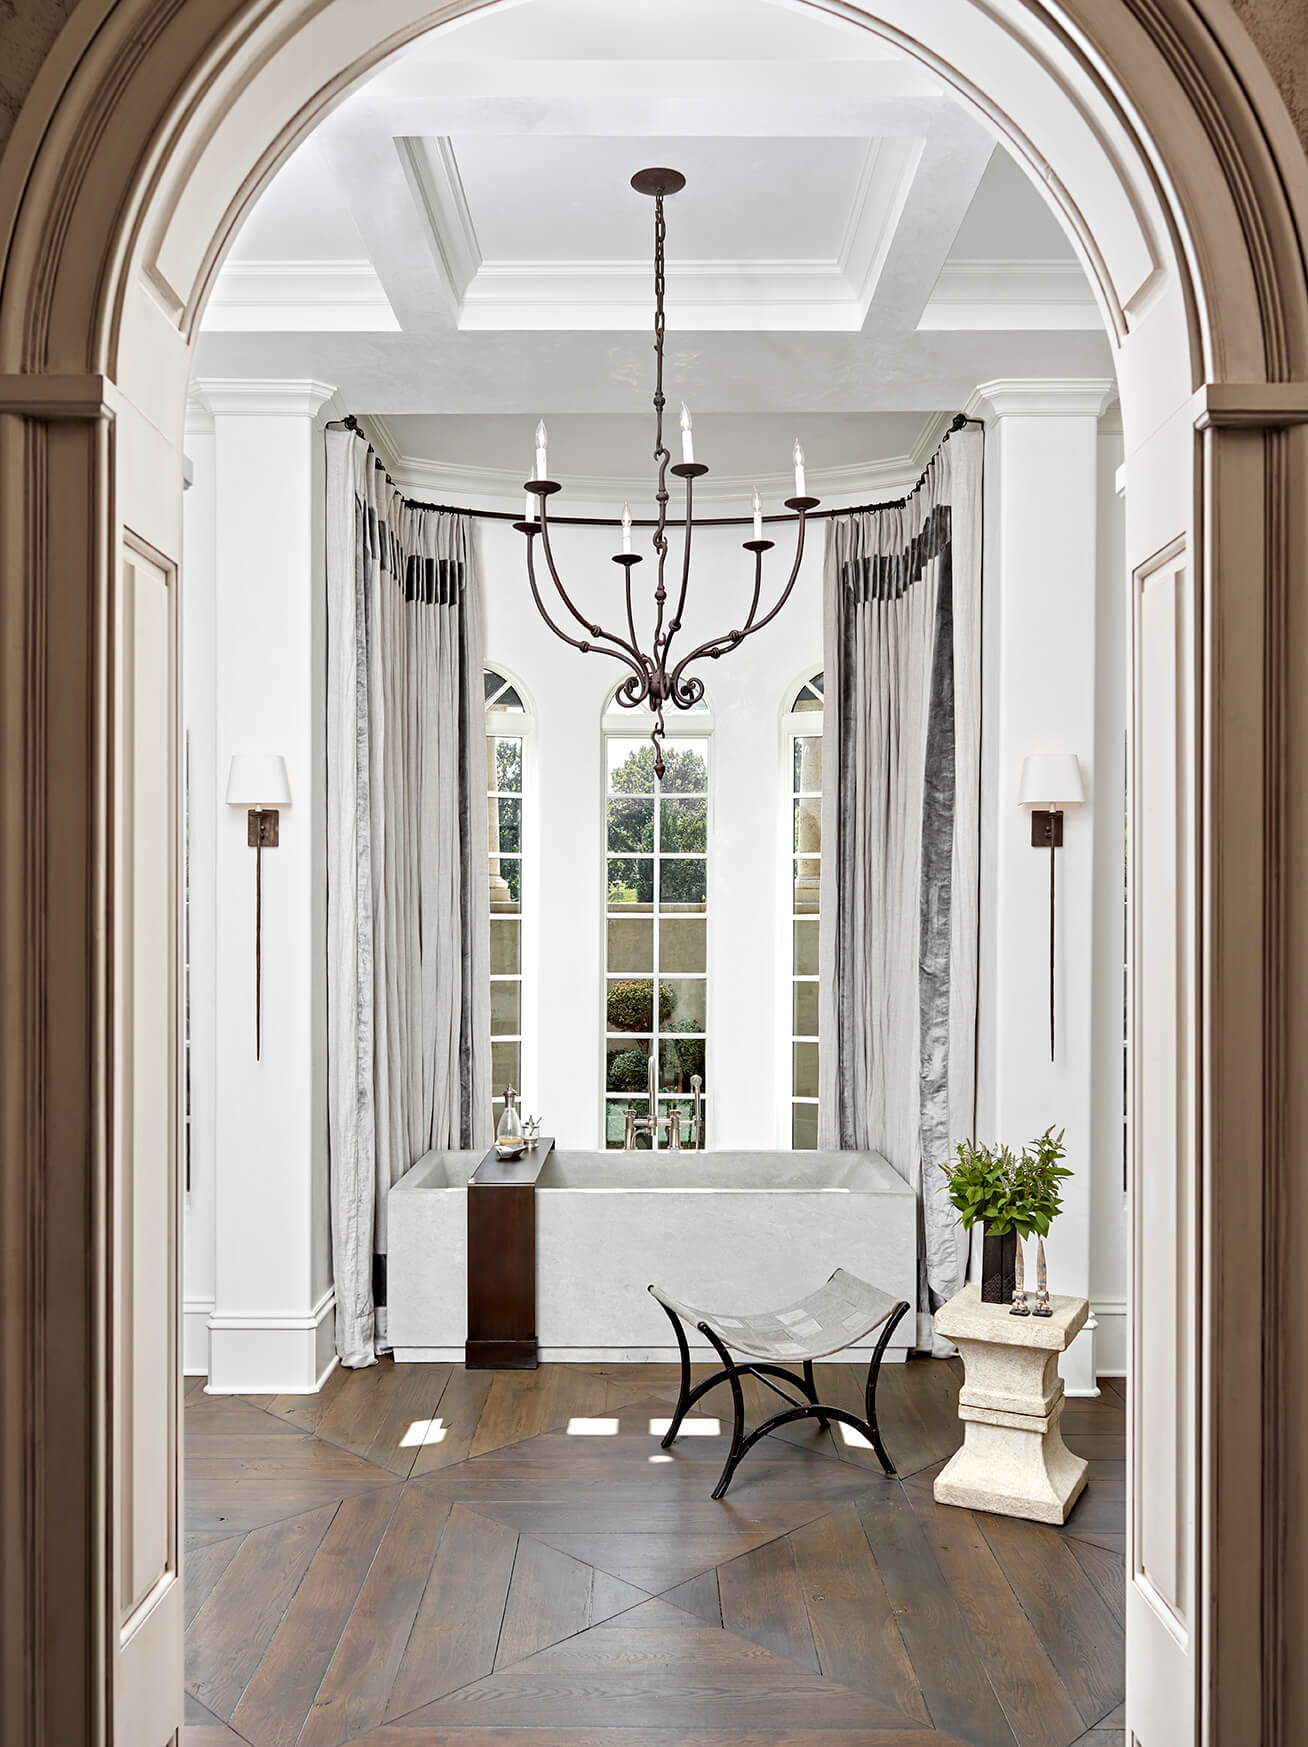 archway-to-luxury-bathroom-dark-wood-floors-formal-transitional-bureau-interior-design-nashville-tn.jpg